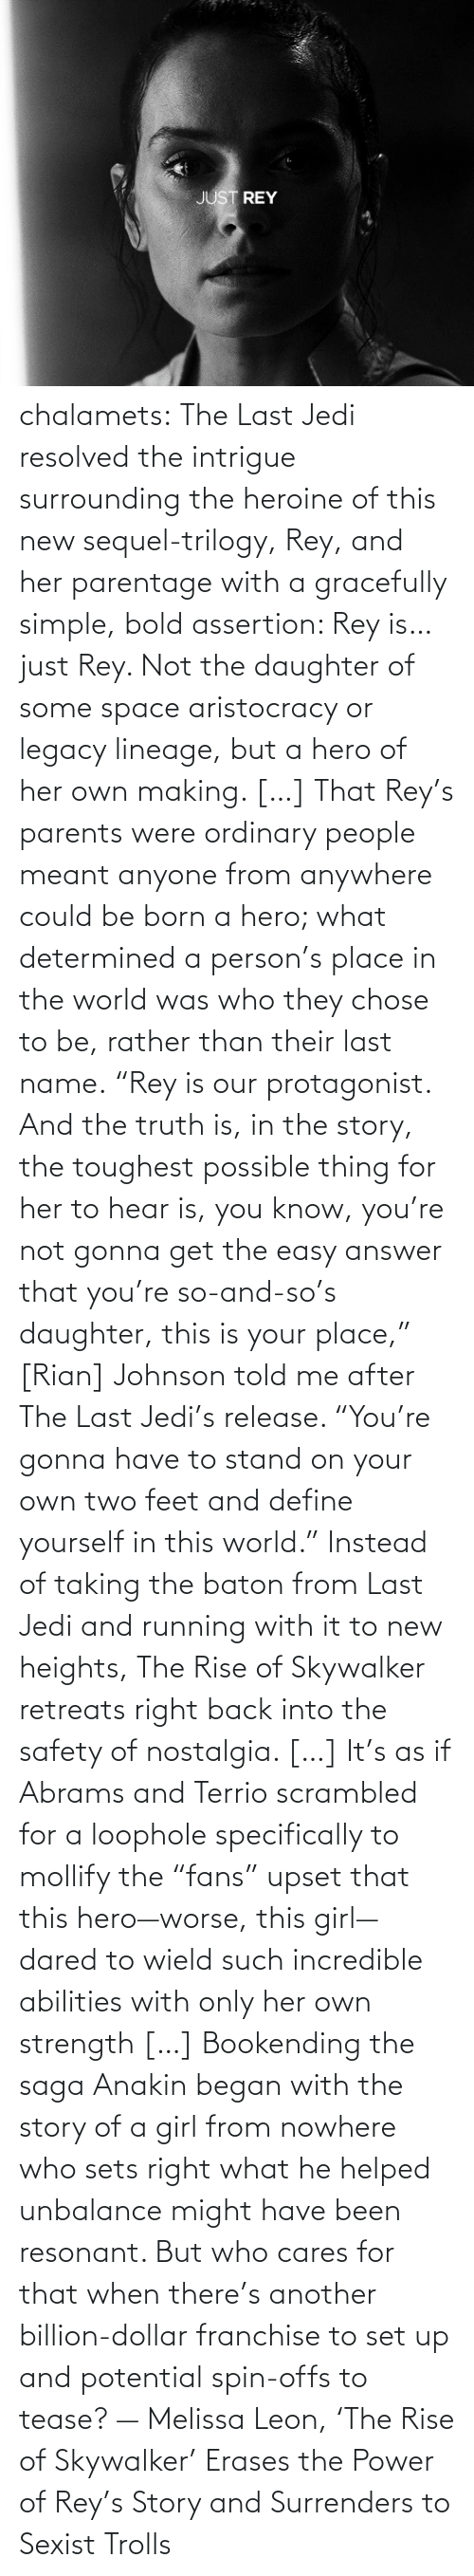 "Told: chalamets:  The Last Jedi resolved the intrigue surrounding the heroine of this new sequel-trilogy, Rey, and her parentage with a gracefully simple, bold assertion: Rey is… just Rey. Not the daughter of some space aristocracy or legacy lineage, but a hero of her own making. […] That Rey's parents were ordinary people meant anyone from anywhere could be born a hero; what determined a person's place in the world was who they chose to be, rather than their last name. ""Rey is our protagonist. And the truth is, in the story, the toughest possible thing for her to hear is, you know, you're not gonna get the easy answer that you're so-and-so's daughter, this is your place,"" [Rian] Johnson told me after The Last Jedi's release. ""You're gonna have to stand on your own two feet and define yourself in this world."" Instead of taking the baton from Last Jedi and running with it to new heights, The Rise of Skywalker retreats right back into the safety of nostalgia. […] It's as if Abrams and Terrio scrambled for a loophole specifically to mollify the ""fans"" upset that this hero—worse, this girl—dared to wield such incredible abilities with only her own strength […] Bookending the saga Anakin began with the story of a girl from nowhere who sets right what he helped unbalance might have been resonant. But who cares for that when there's another billion-dollar franchise to set up and potential spin-offs to tease? — Melissa Leon, 'The Rise of Skywalker' Erases the Power of Rey's Story and Surrenders to Sexist Trolls"